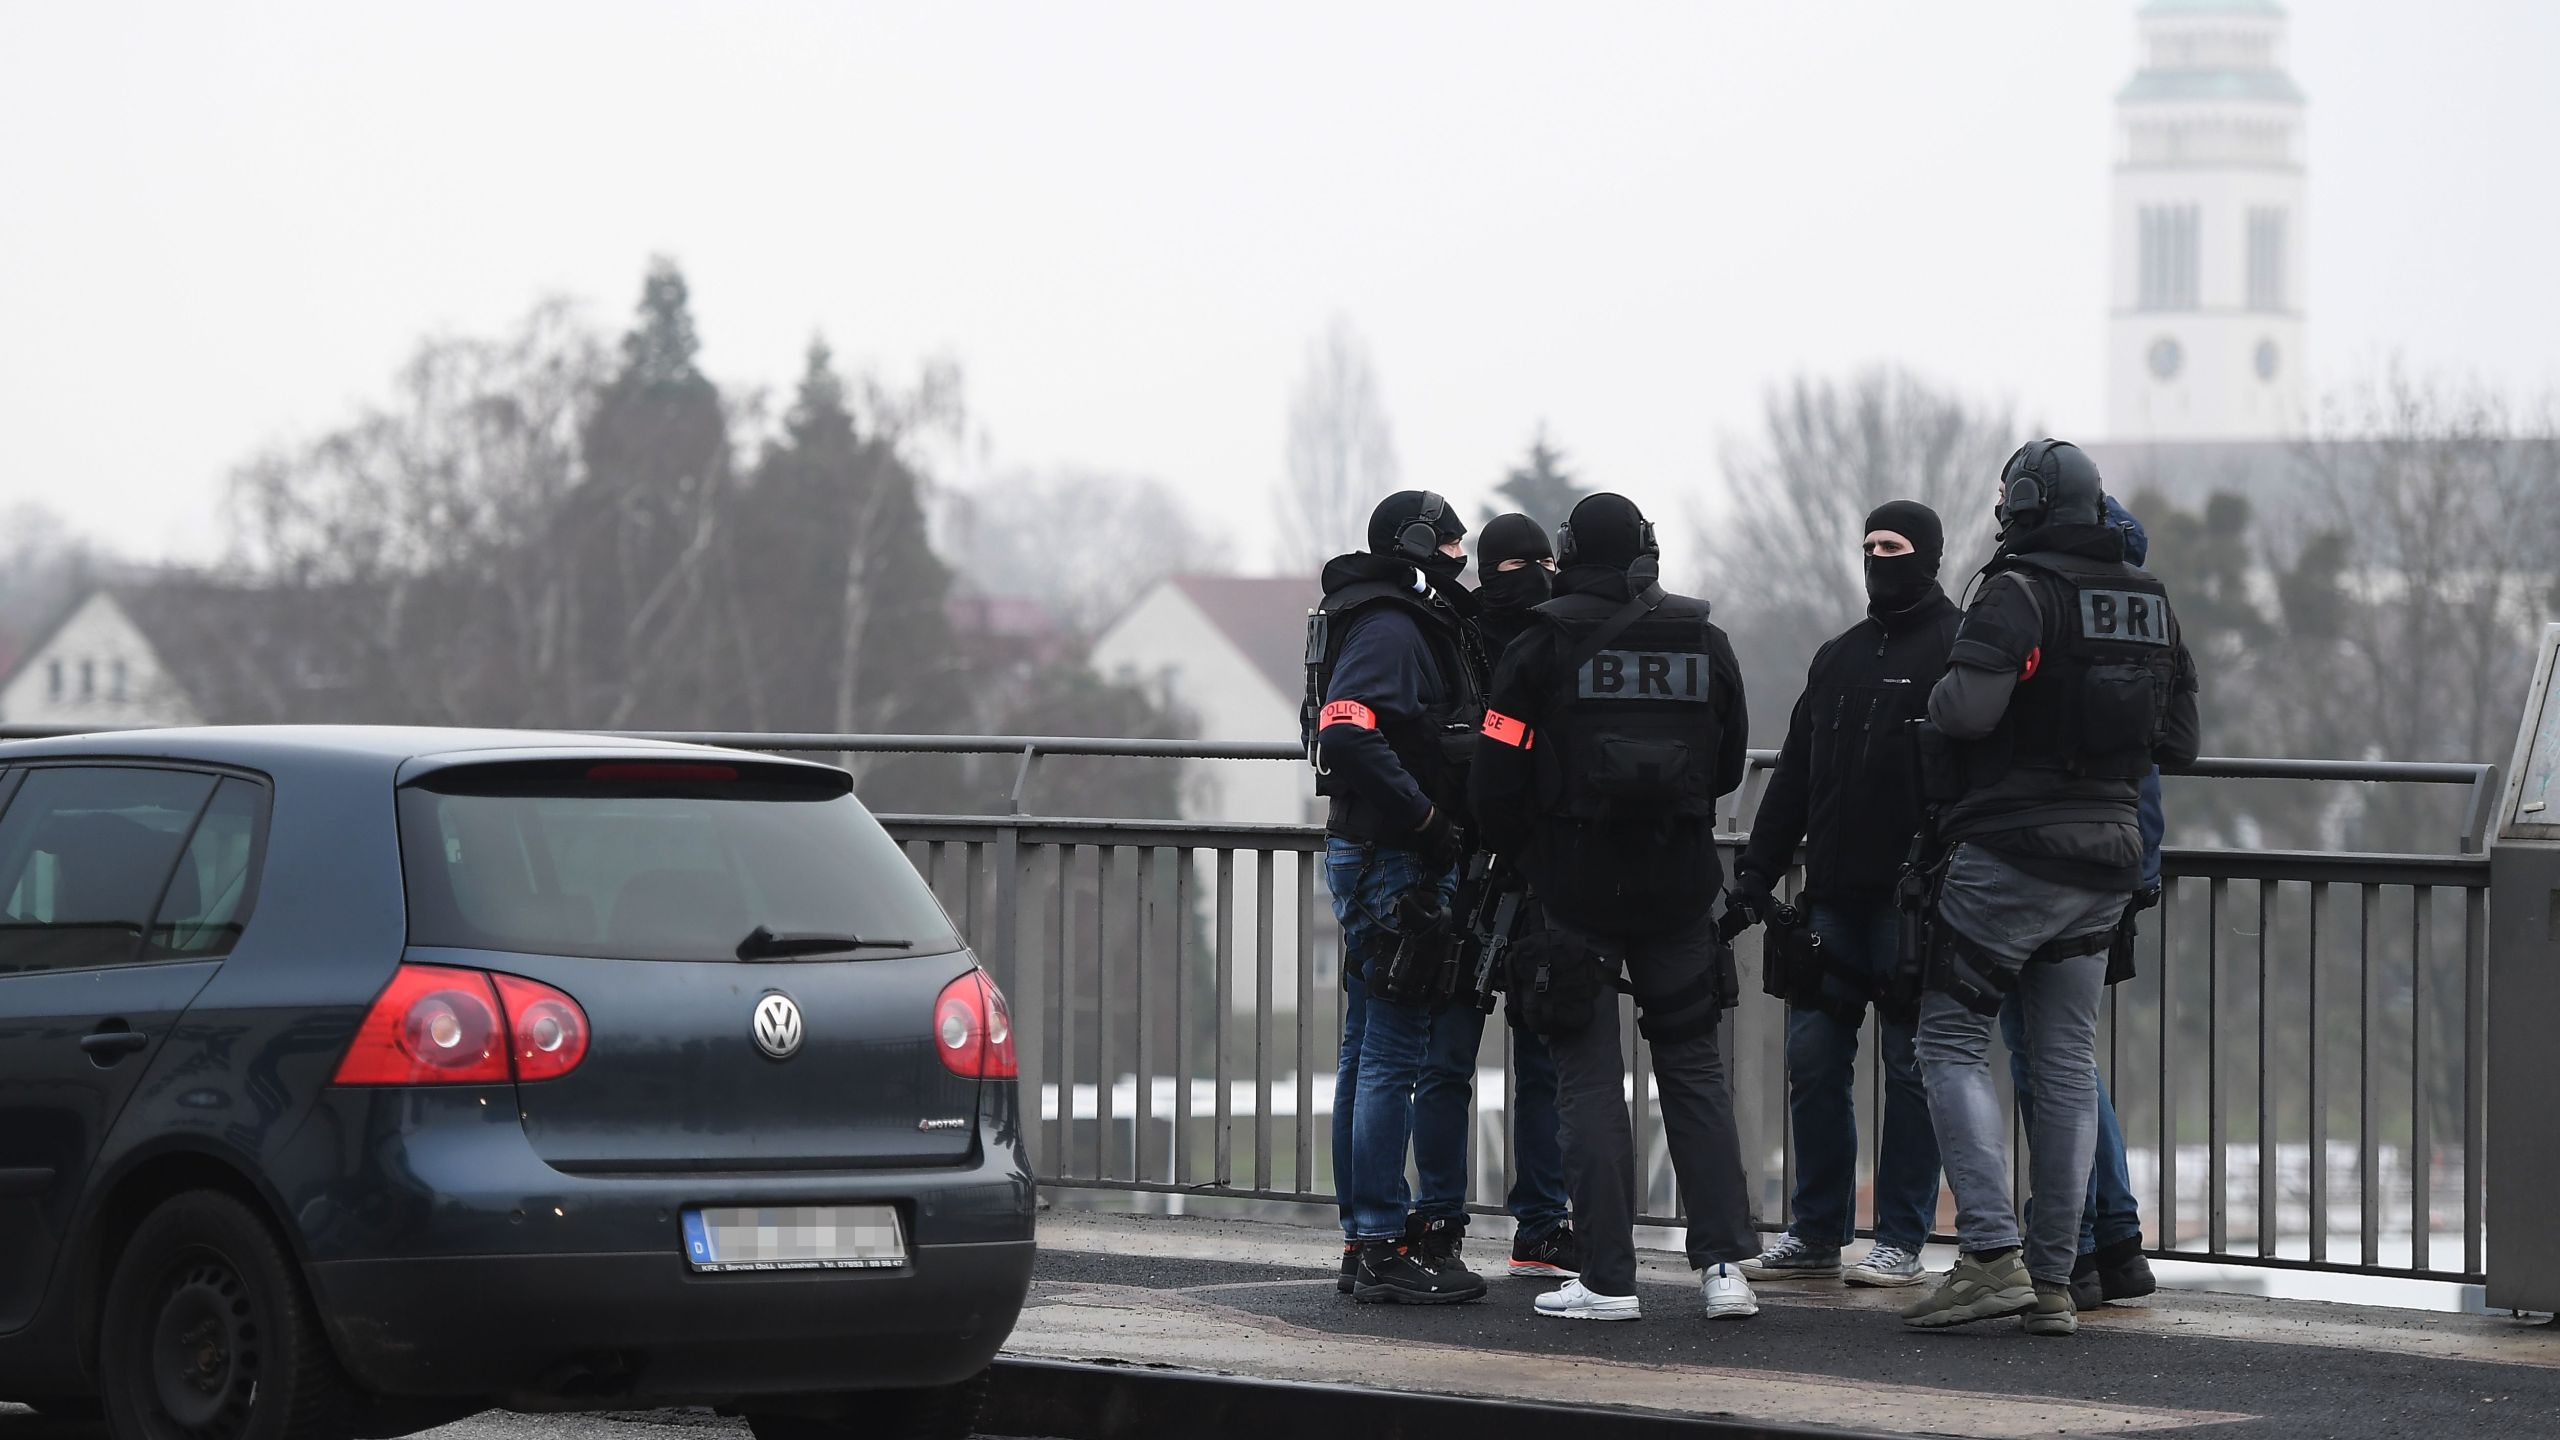 Members of the French police unit BRI stand guard on the Pont de l'Europe crossing the border with Germany over the river Rhine in Strasbourg, on Dec. 12, 2018, during a search for a gunman who opened fire near a Christmas market the night before. (Credit: FREDERICK FLORIN/AFP/Getty Images)